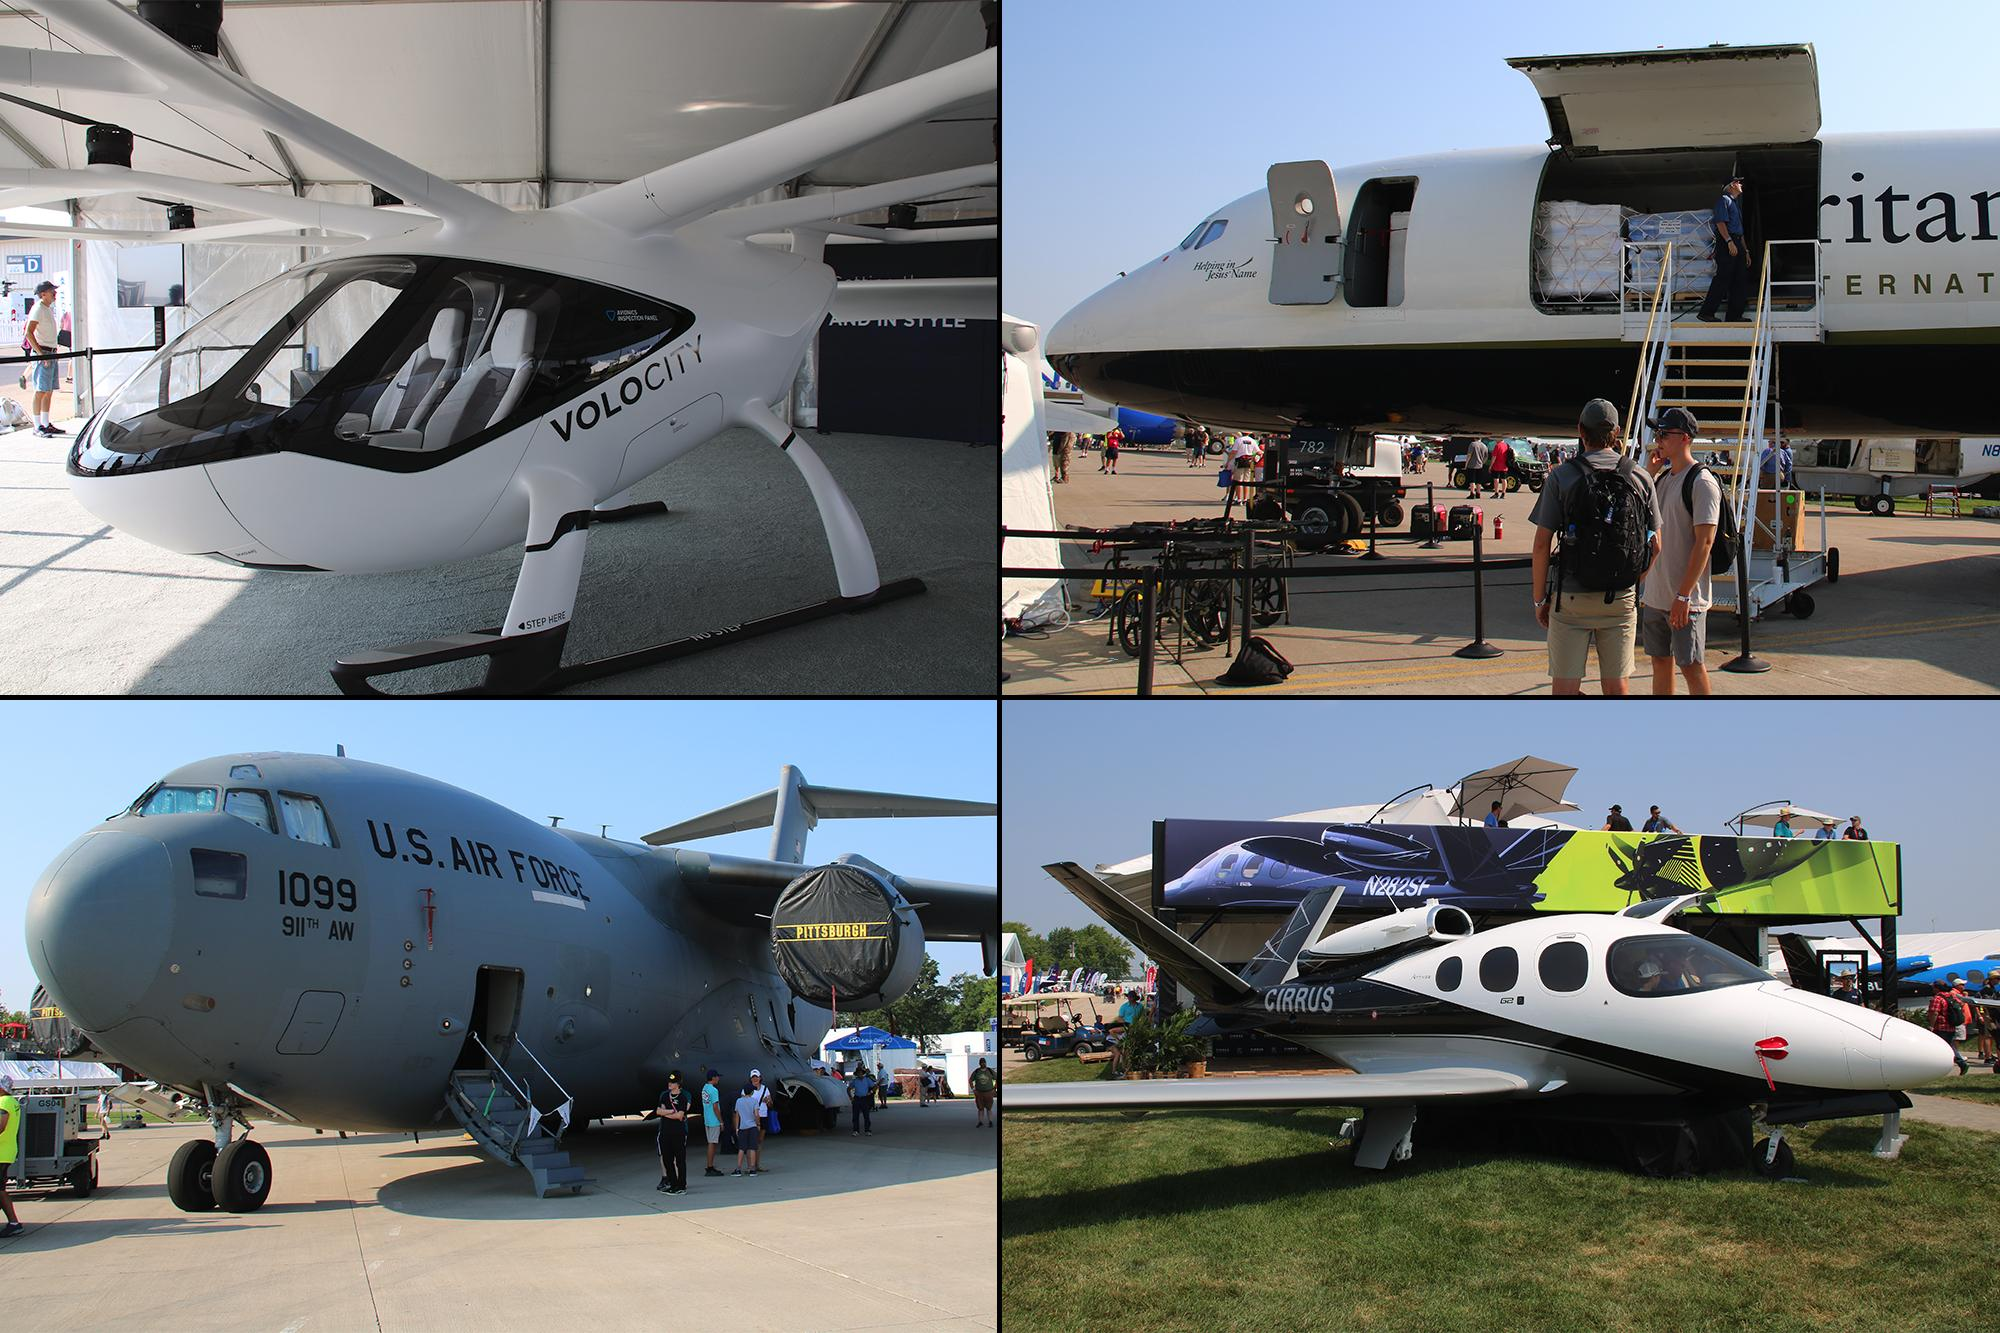 Gallery: Aircraft Spotted at EAA AirVenture 2021